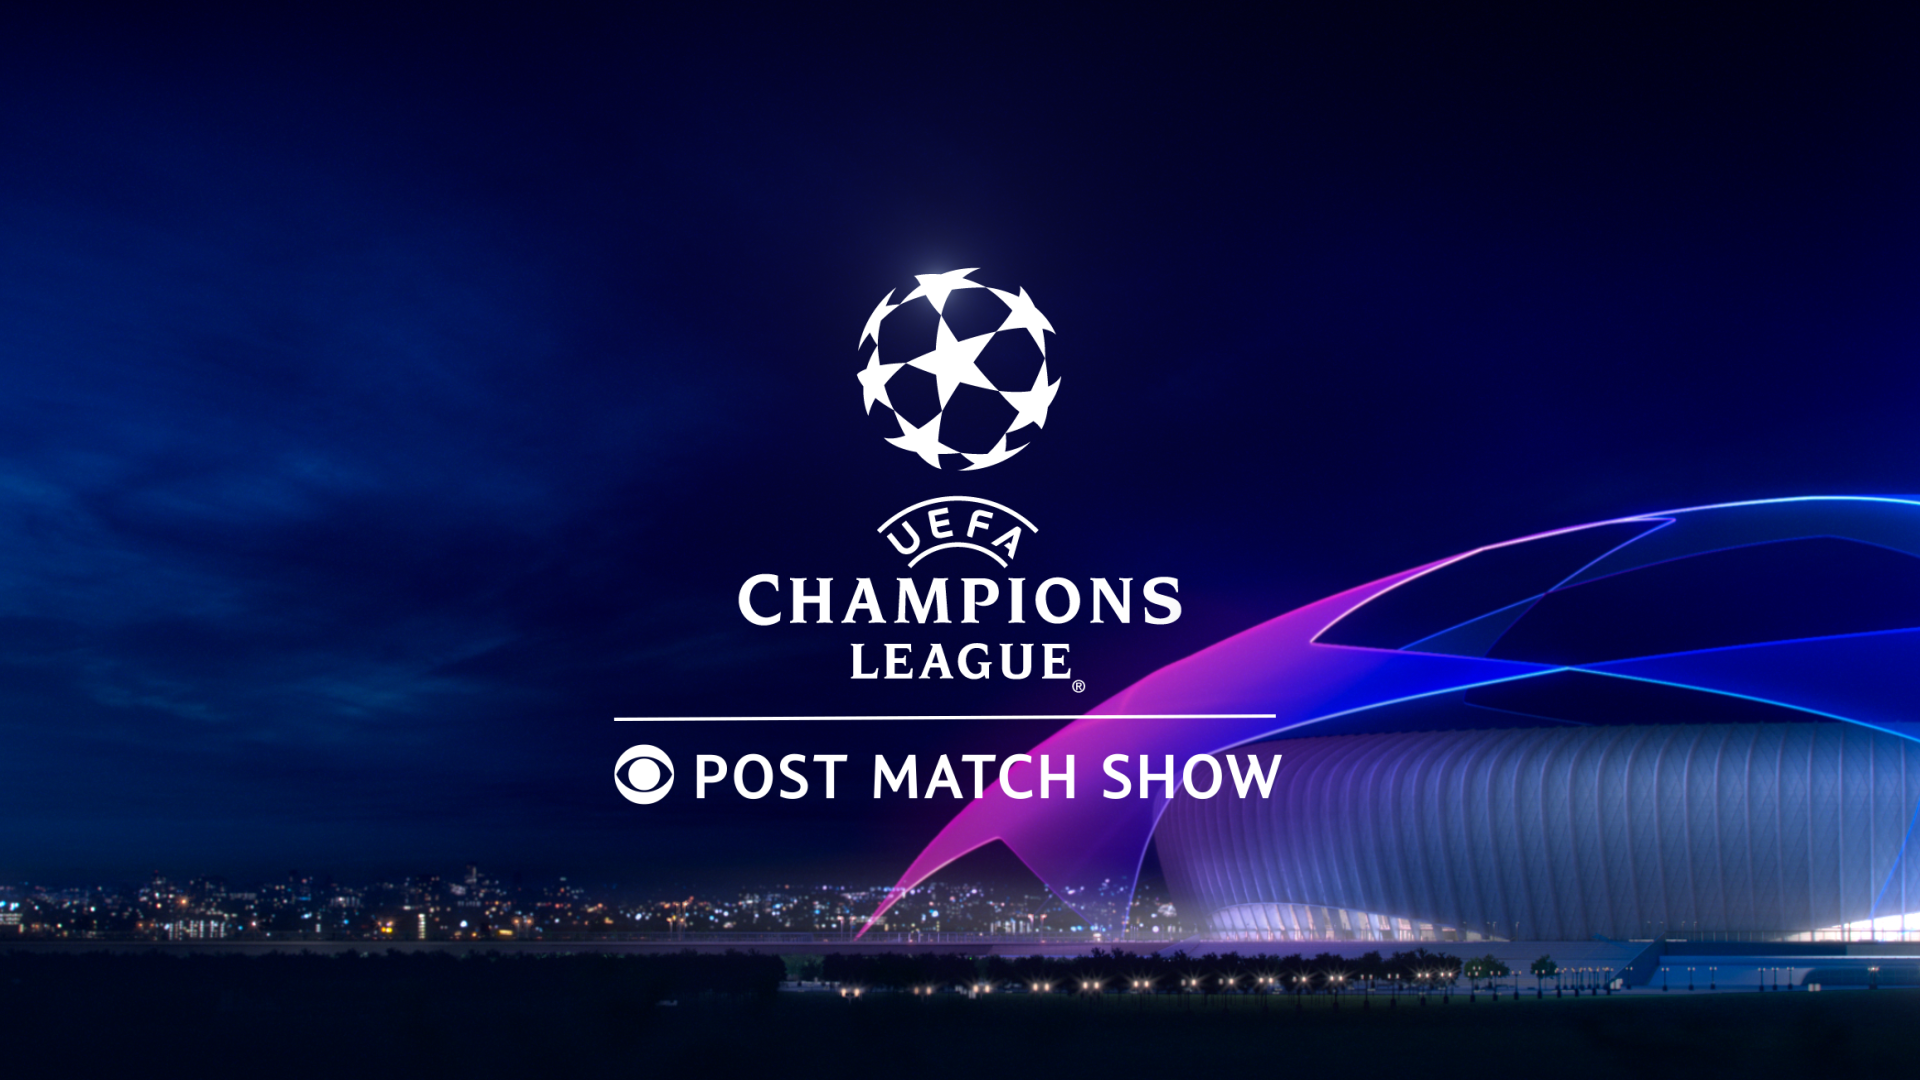 uefa-button-postmatch-v2-248